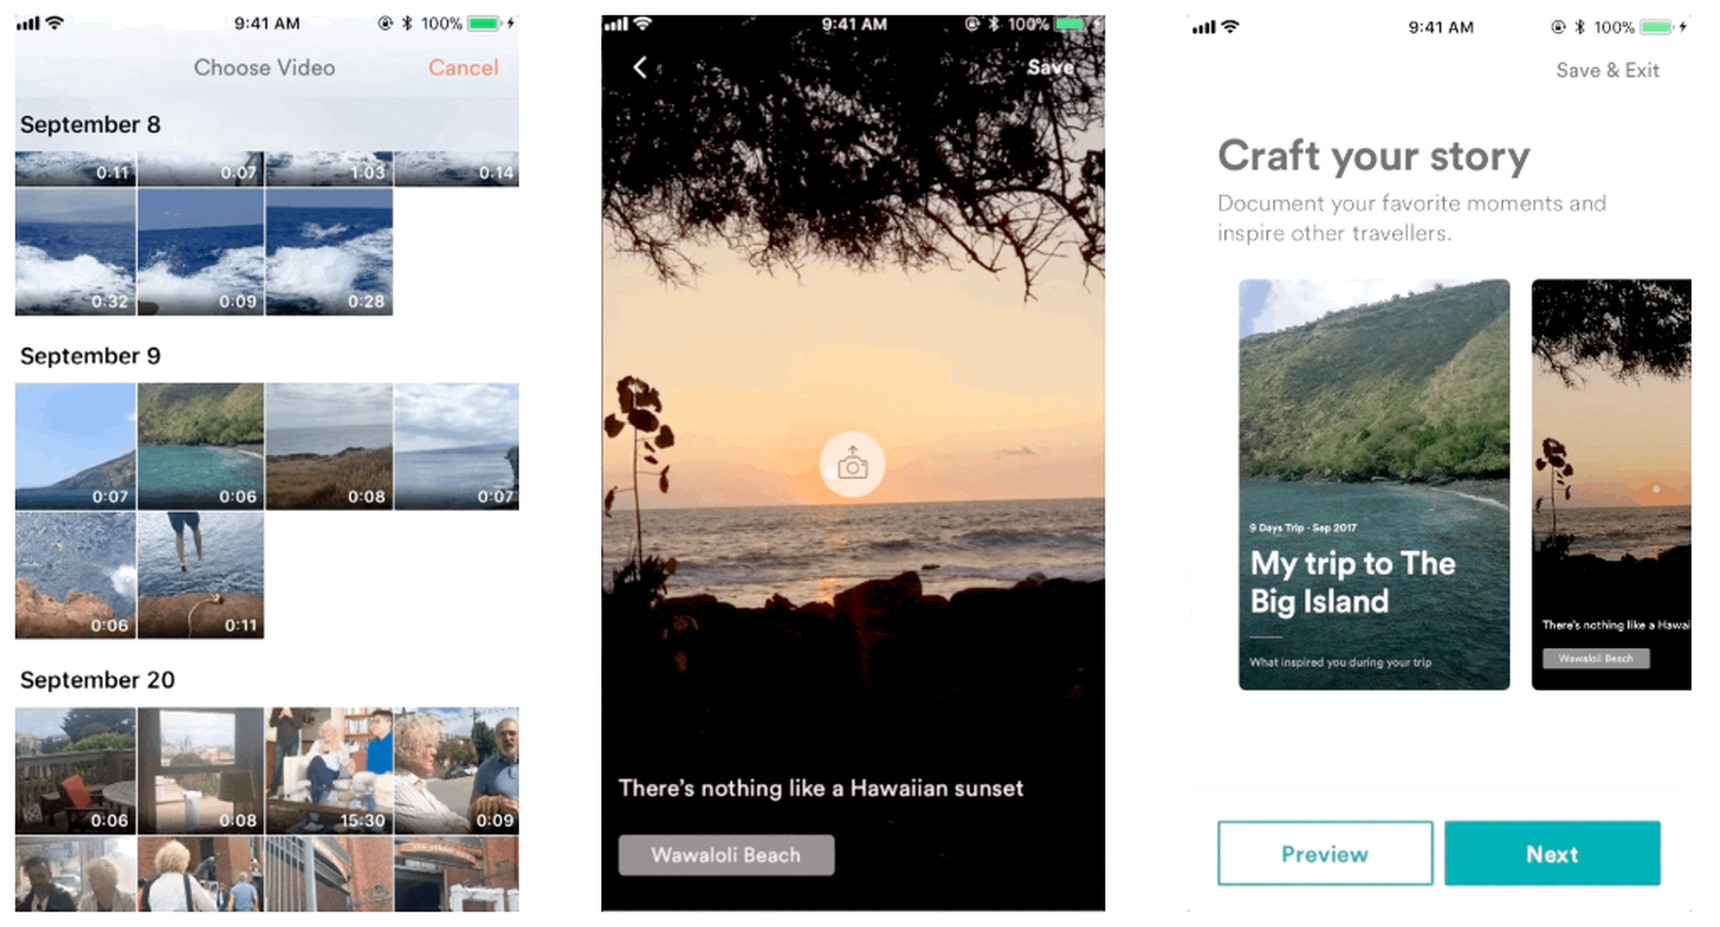 airbnb travel stories